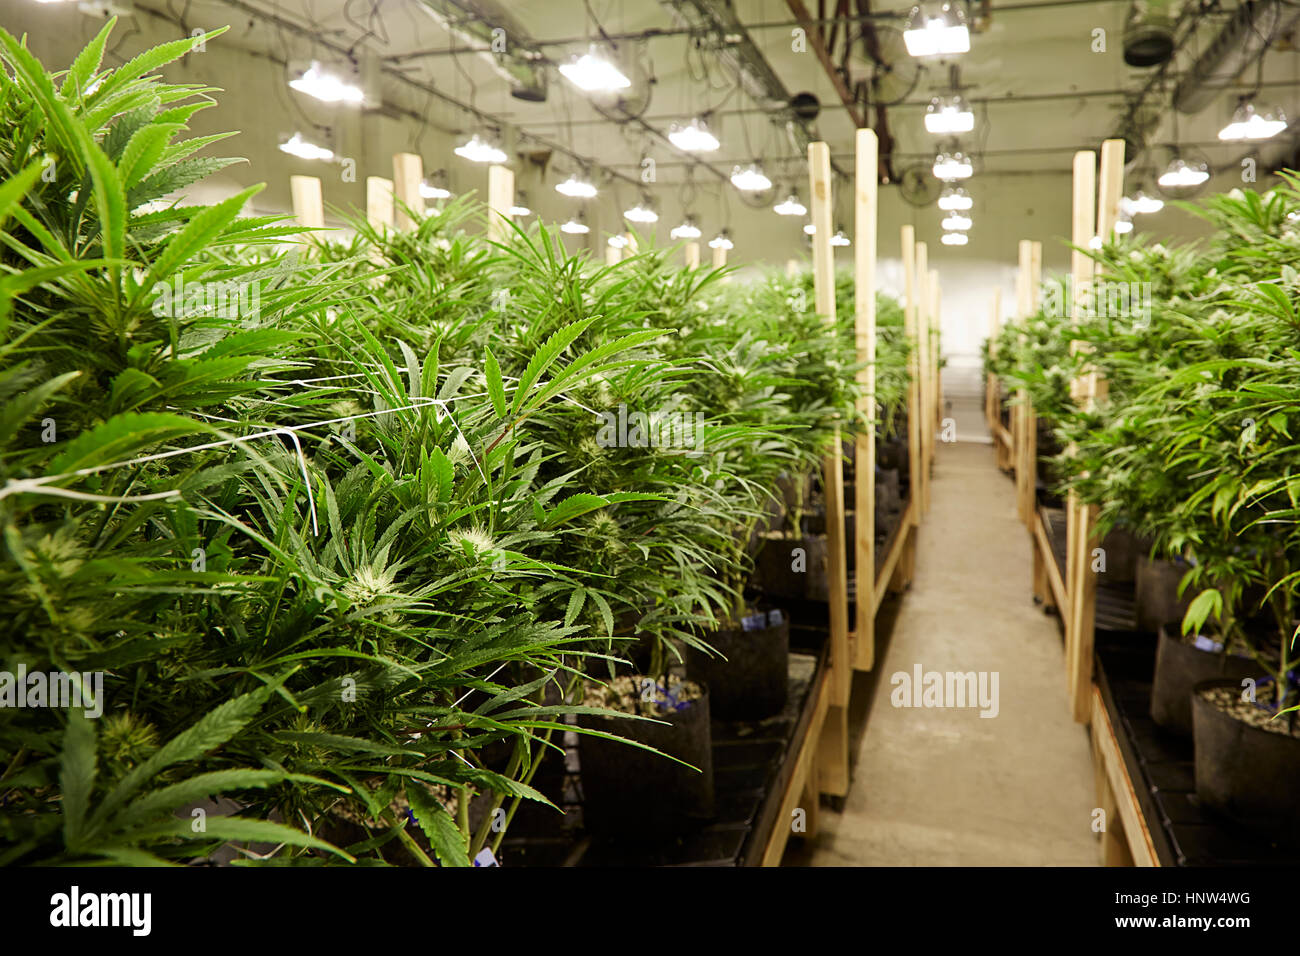 Cannabis plants growing in greenhouse - Stock Image